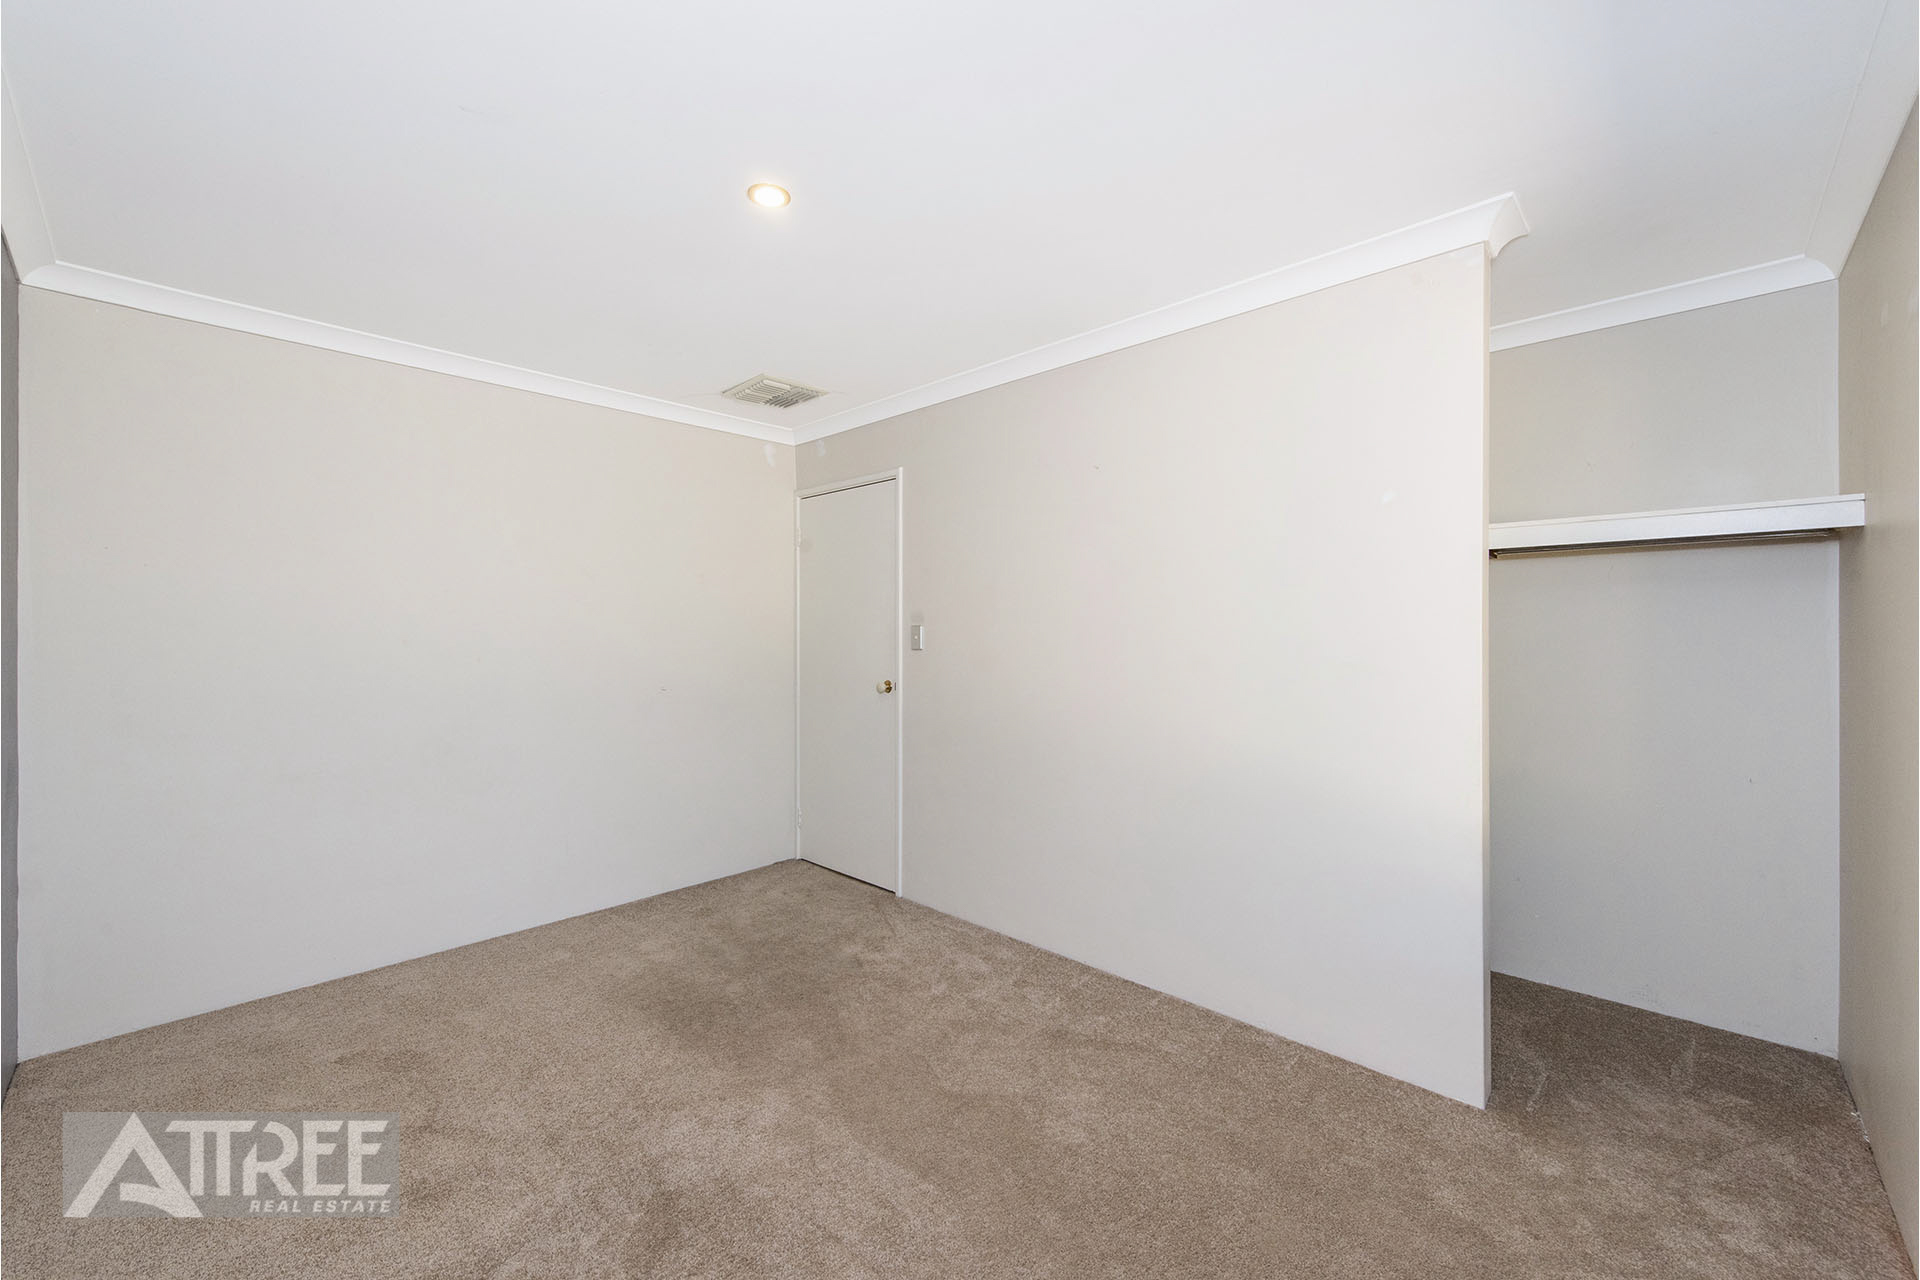 Property for sale in CANNING VALE, 10 Mettler Court : Attree Real Estate